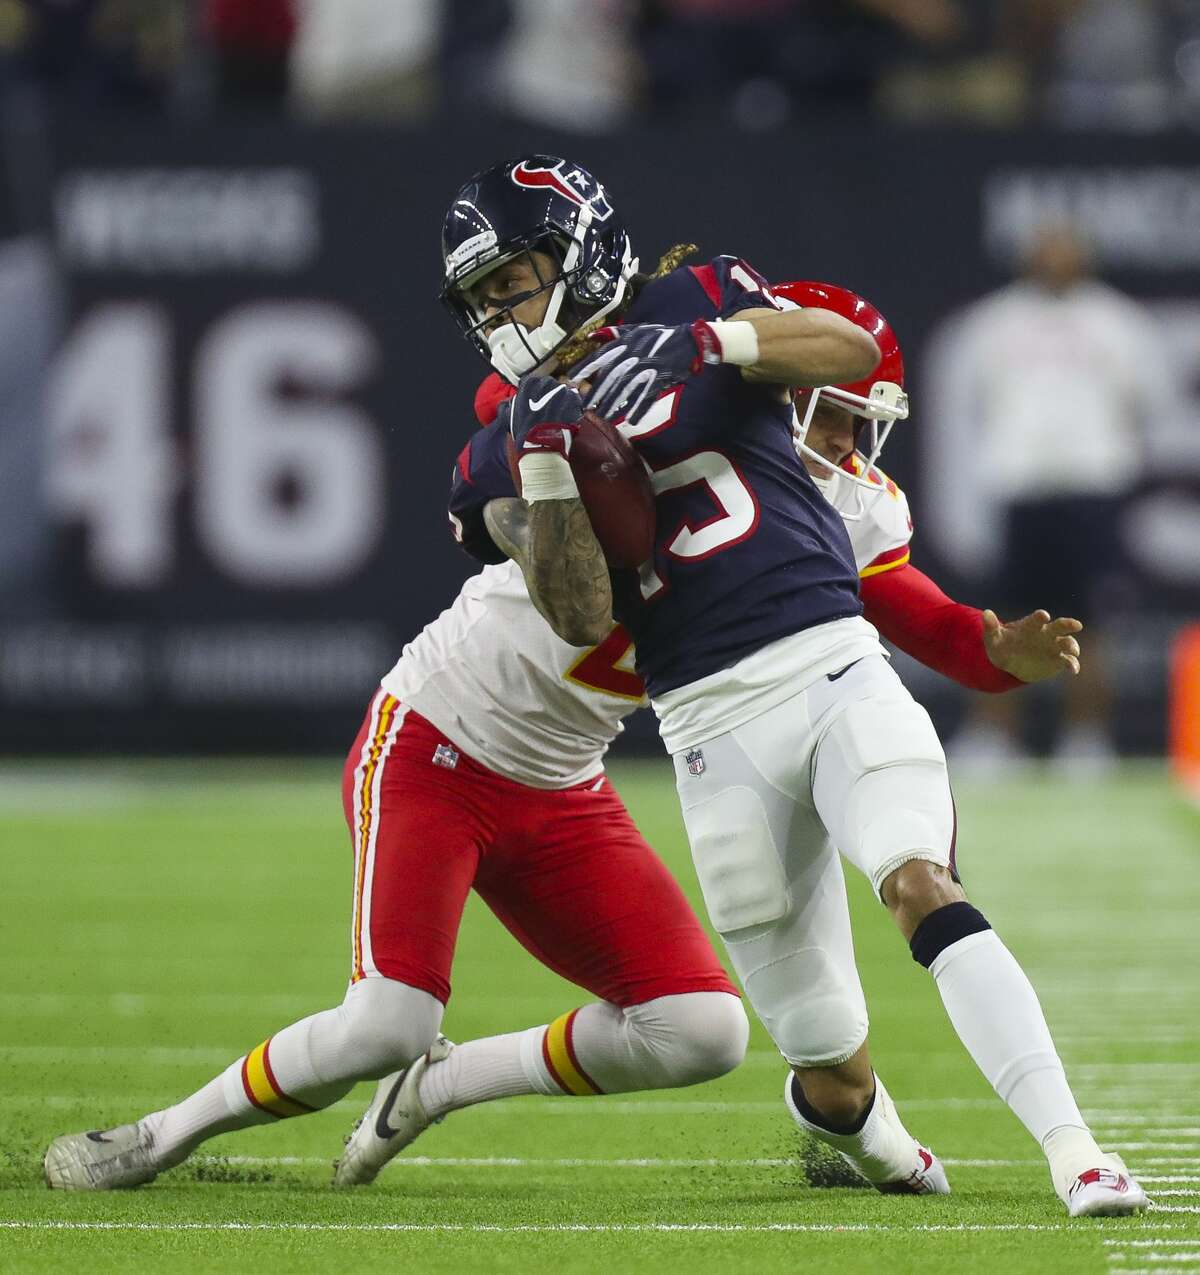 Houston Texans wide receiver Will Fuller (15) returns a punt for 49 yards during the fourth quarter of an NFL football game at NRG Stadium Sunday, Oct. 8, 2017 in Houston. ( Michael Ciaglo / Houston Chronicle)